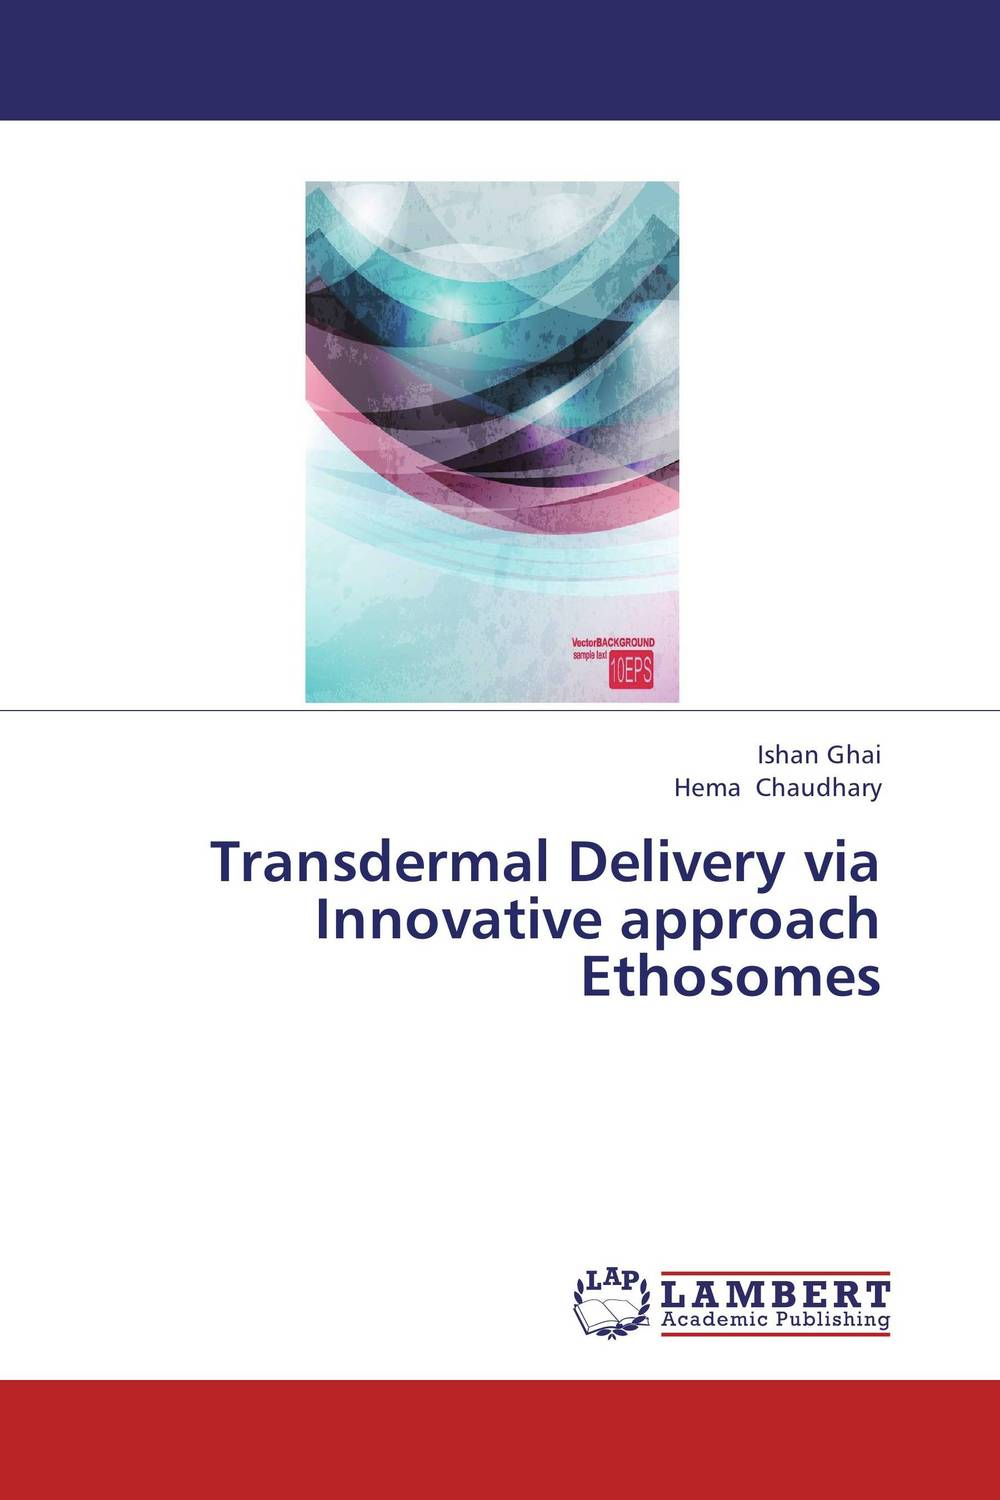 Transdermal Delivery via Innovative approach Ethosomes amit kumar singh chitosan membrane permeated transdermal drug delivery of ondansetron